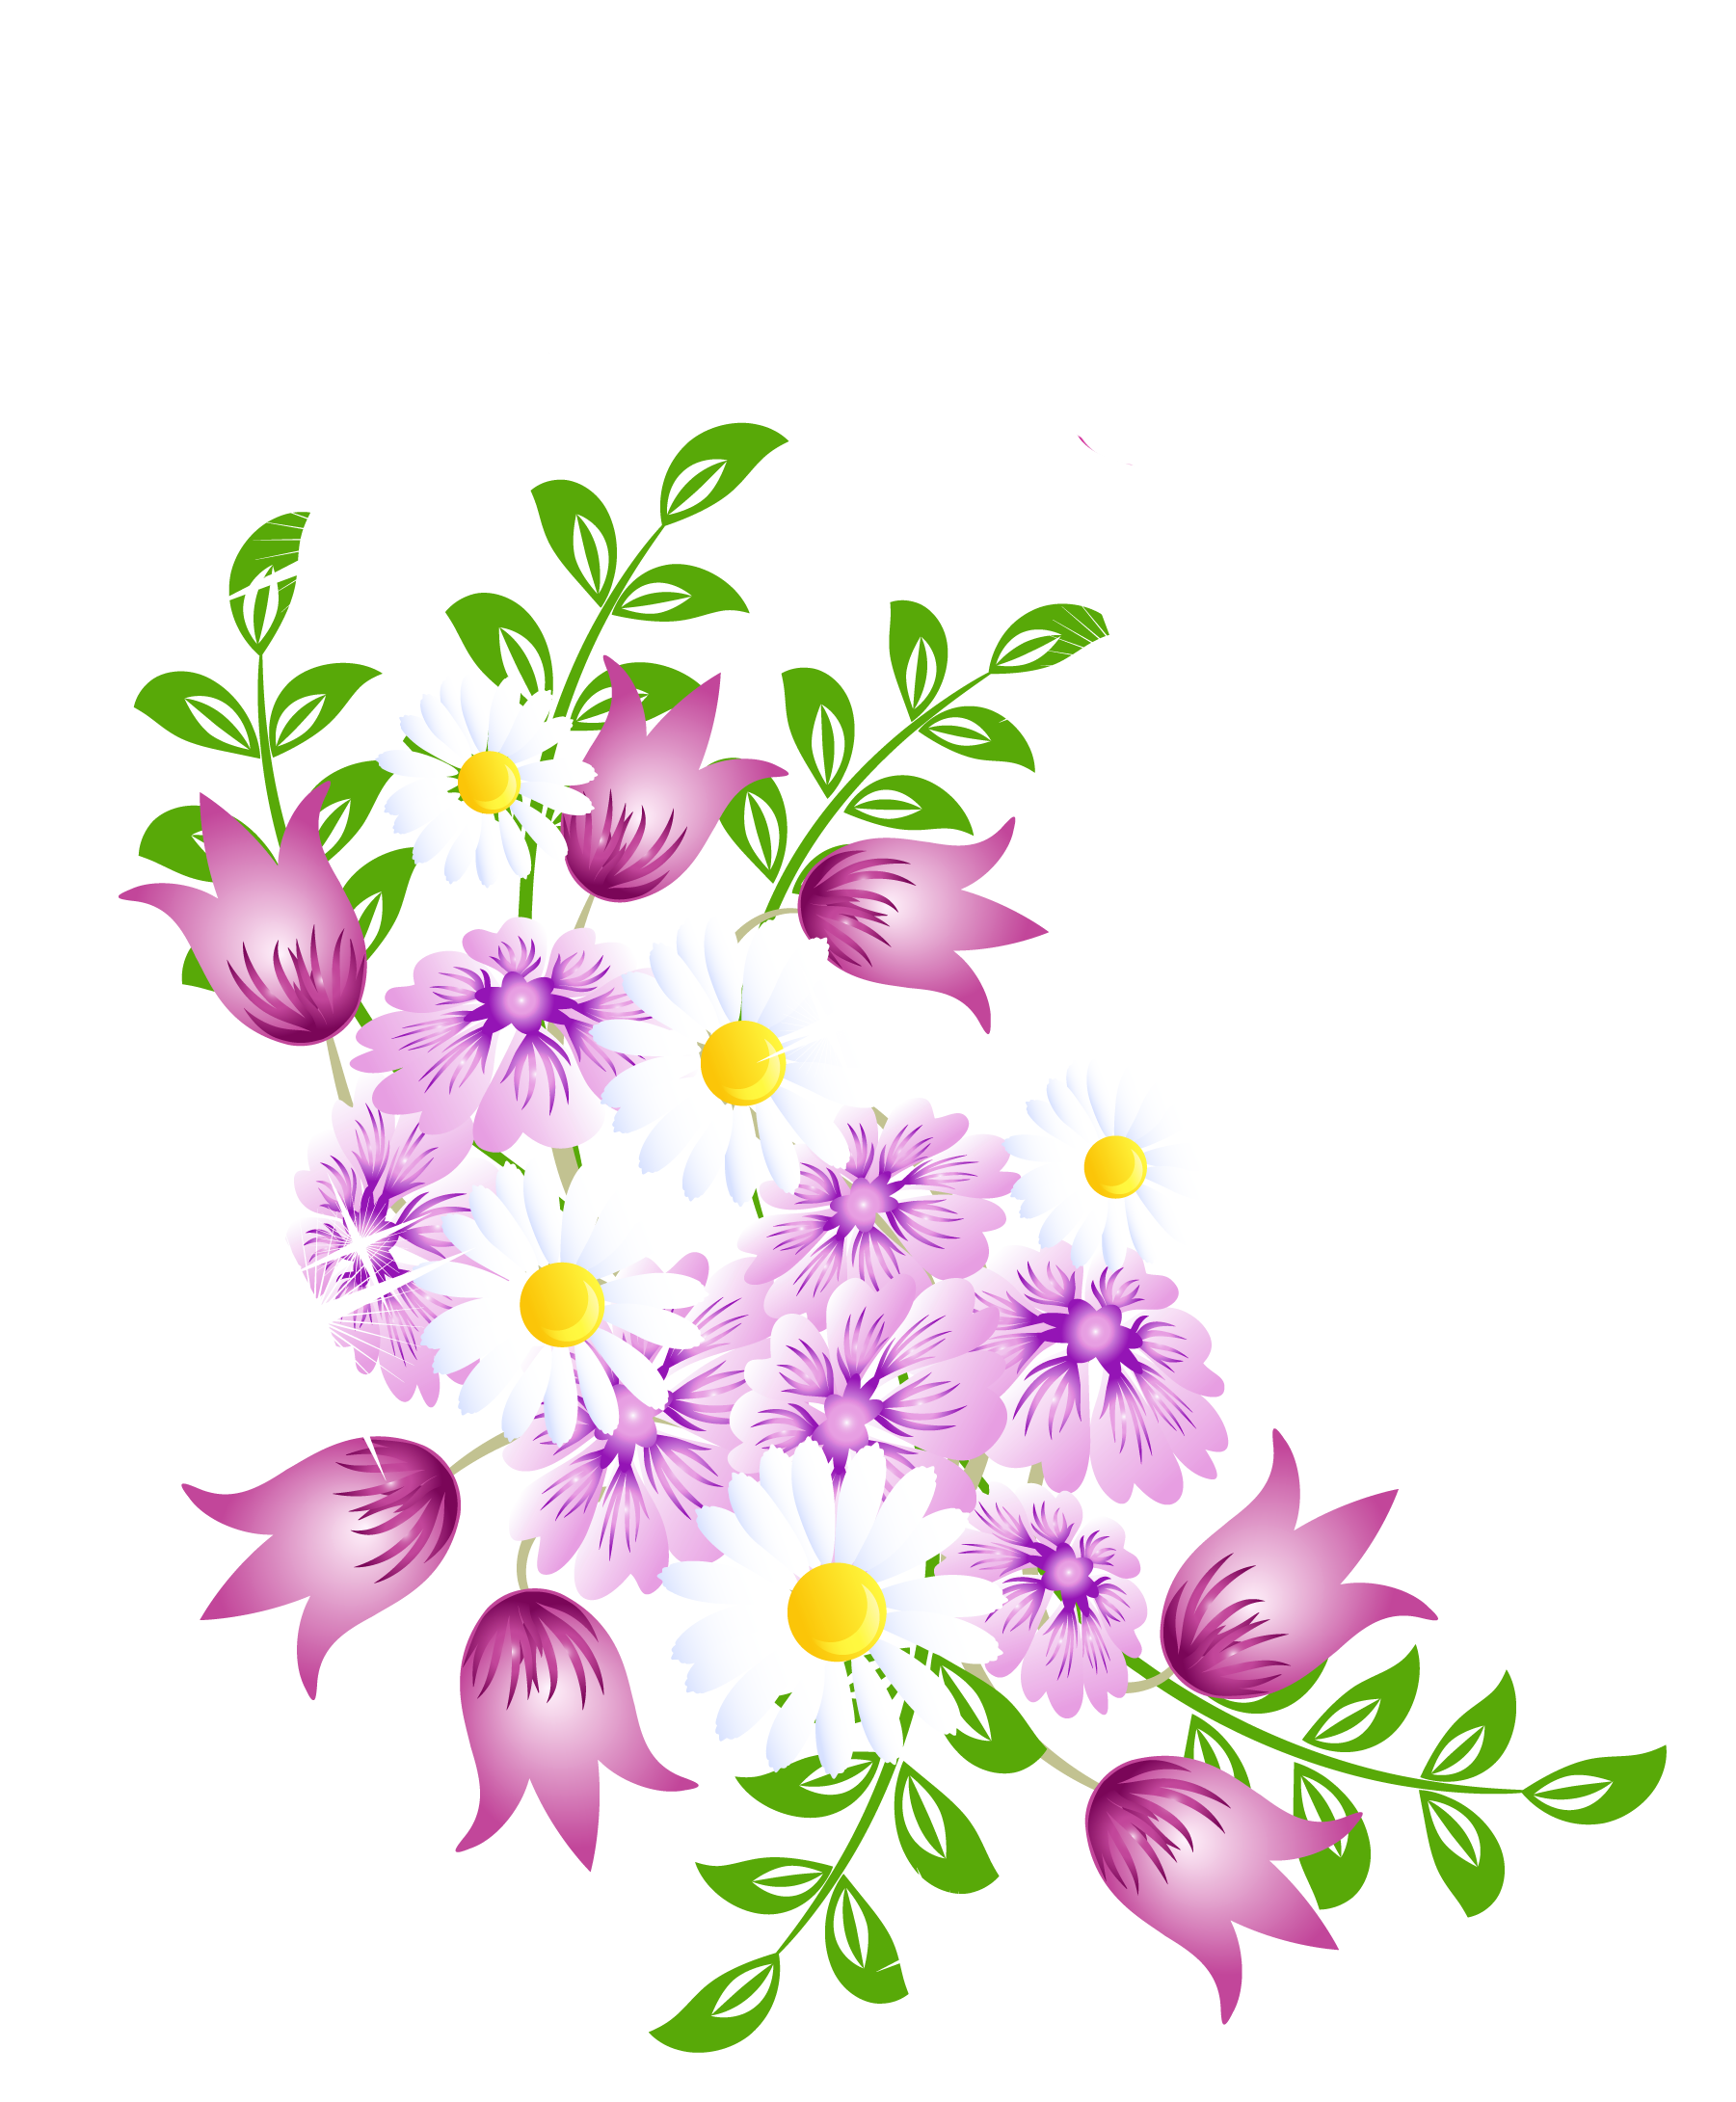 Flower blooming clipart png freeuse download Spring Flowers Decor PNG Picture Clipart | FLOWERS | Pinterest ... png freeuse download